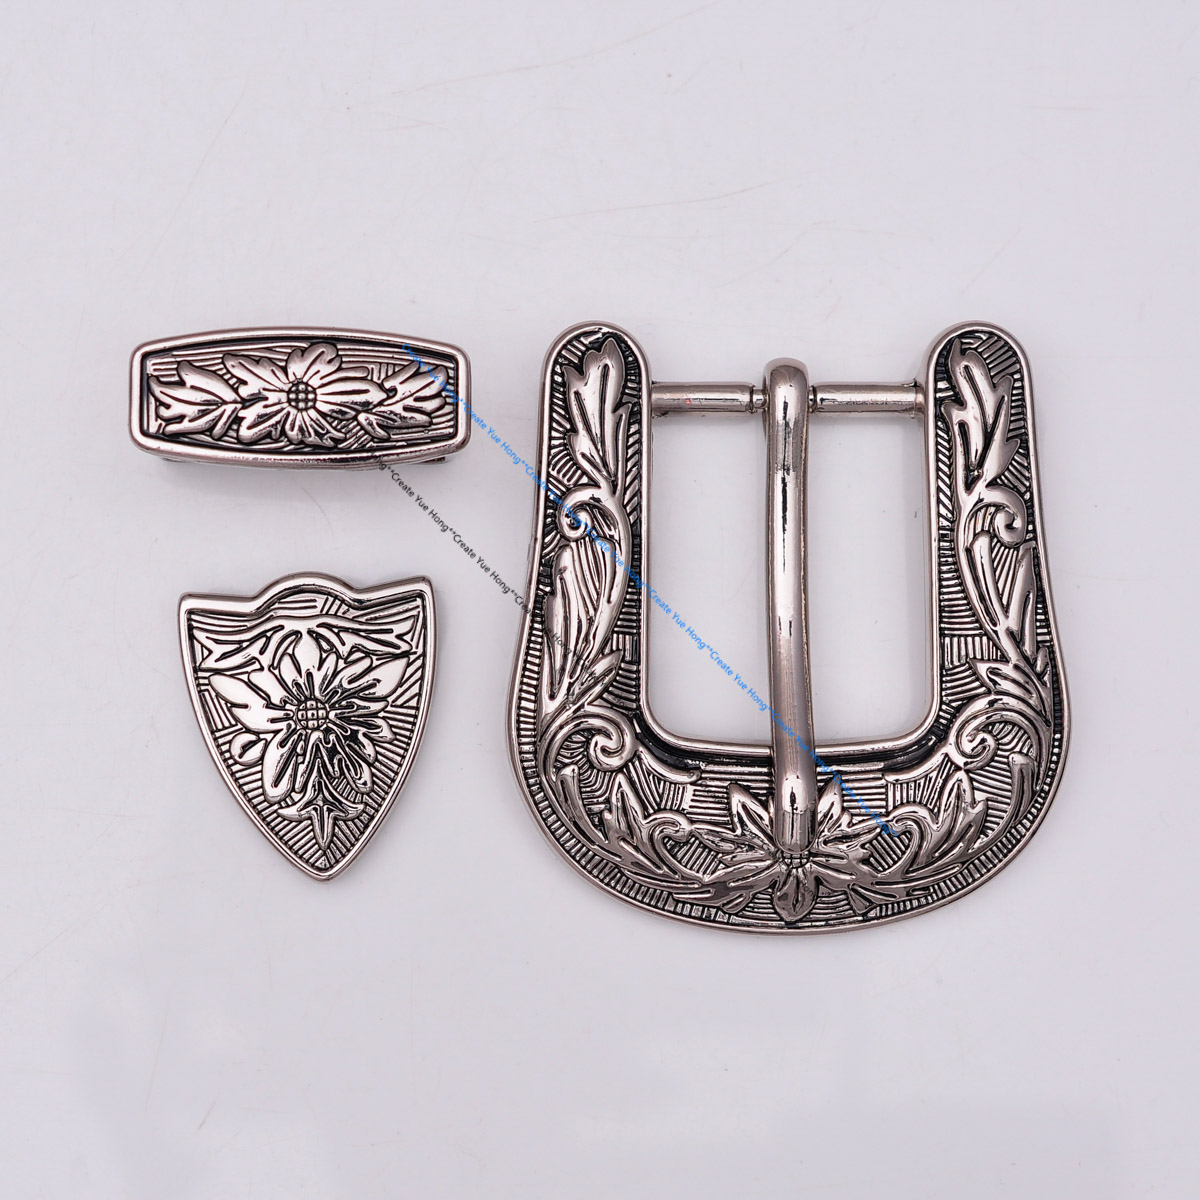 Western Cowboy Cowgirl Rodeo 3PCS Set Silver Floral Engraved Leather Belt Buckle Fit 1